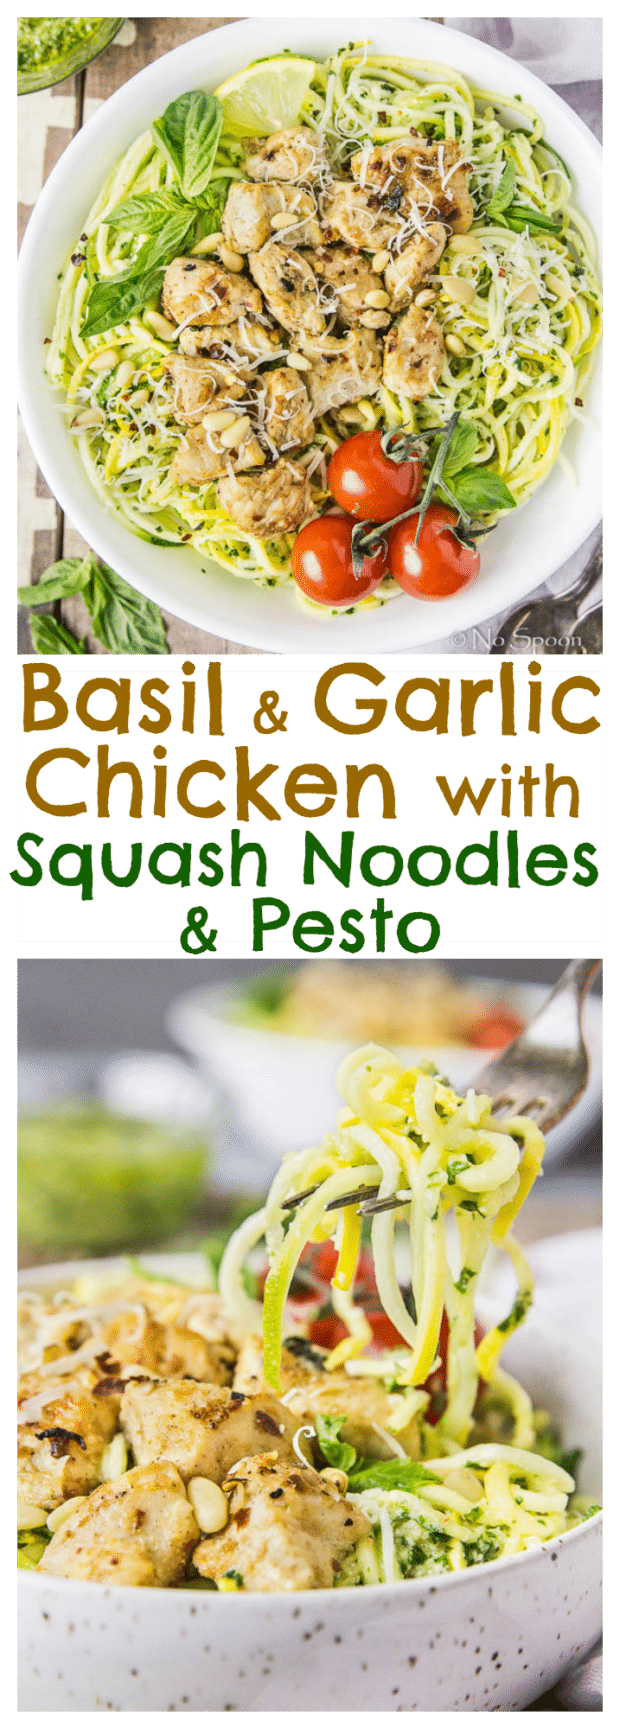 Basil Garlic Chicken Stir Fry with Squash Noodles & Pesto - No Spoon ...